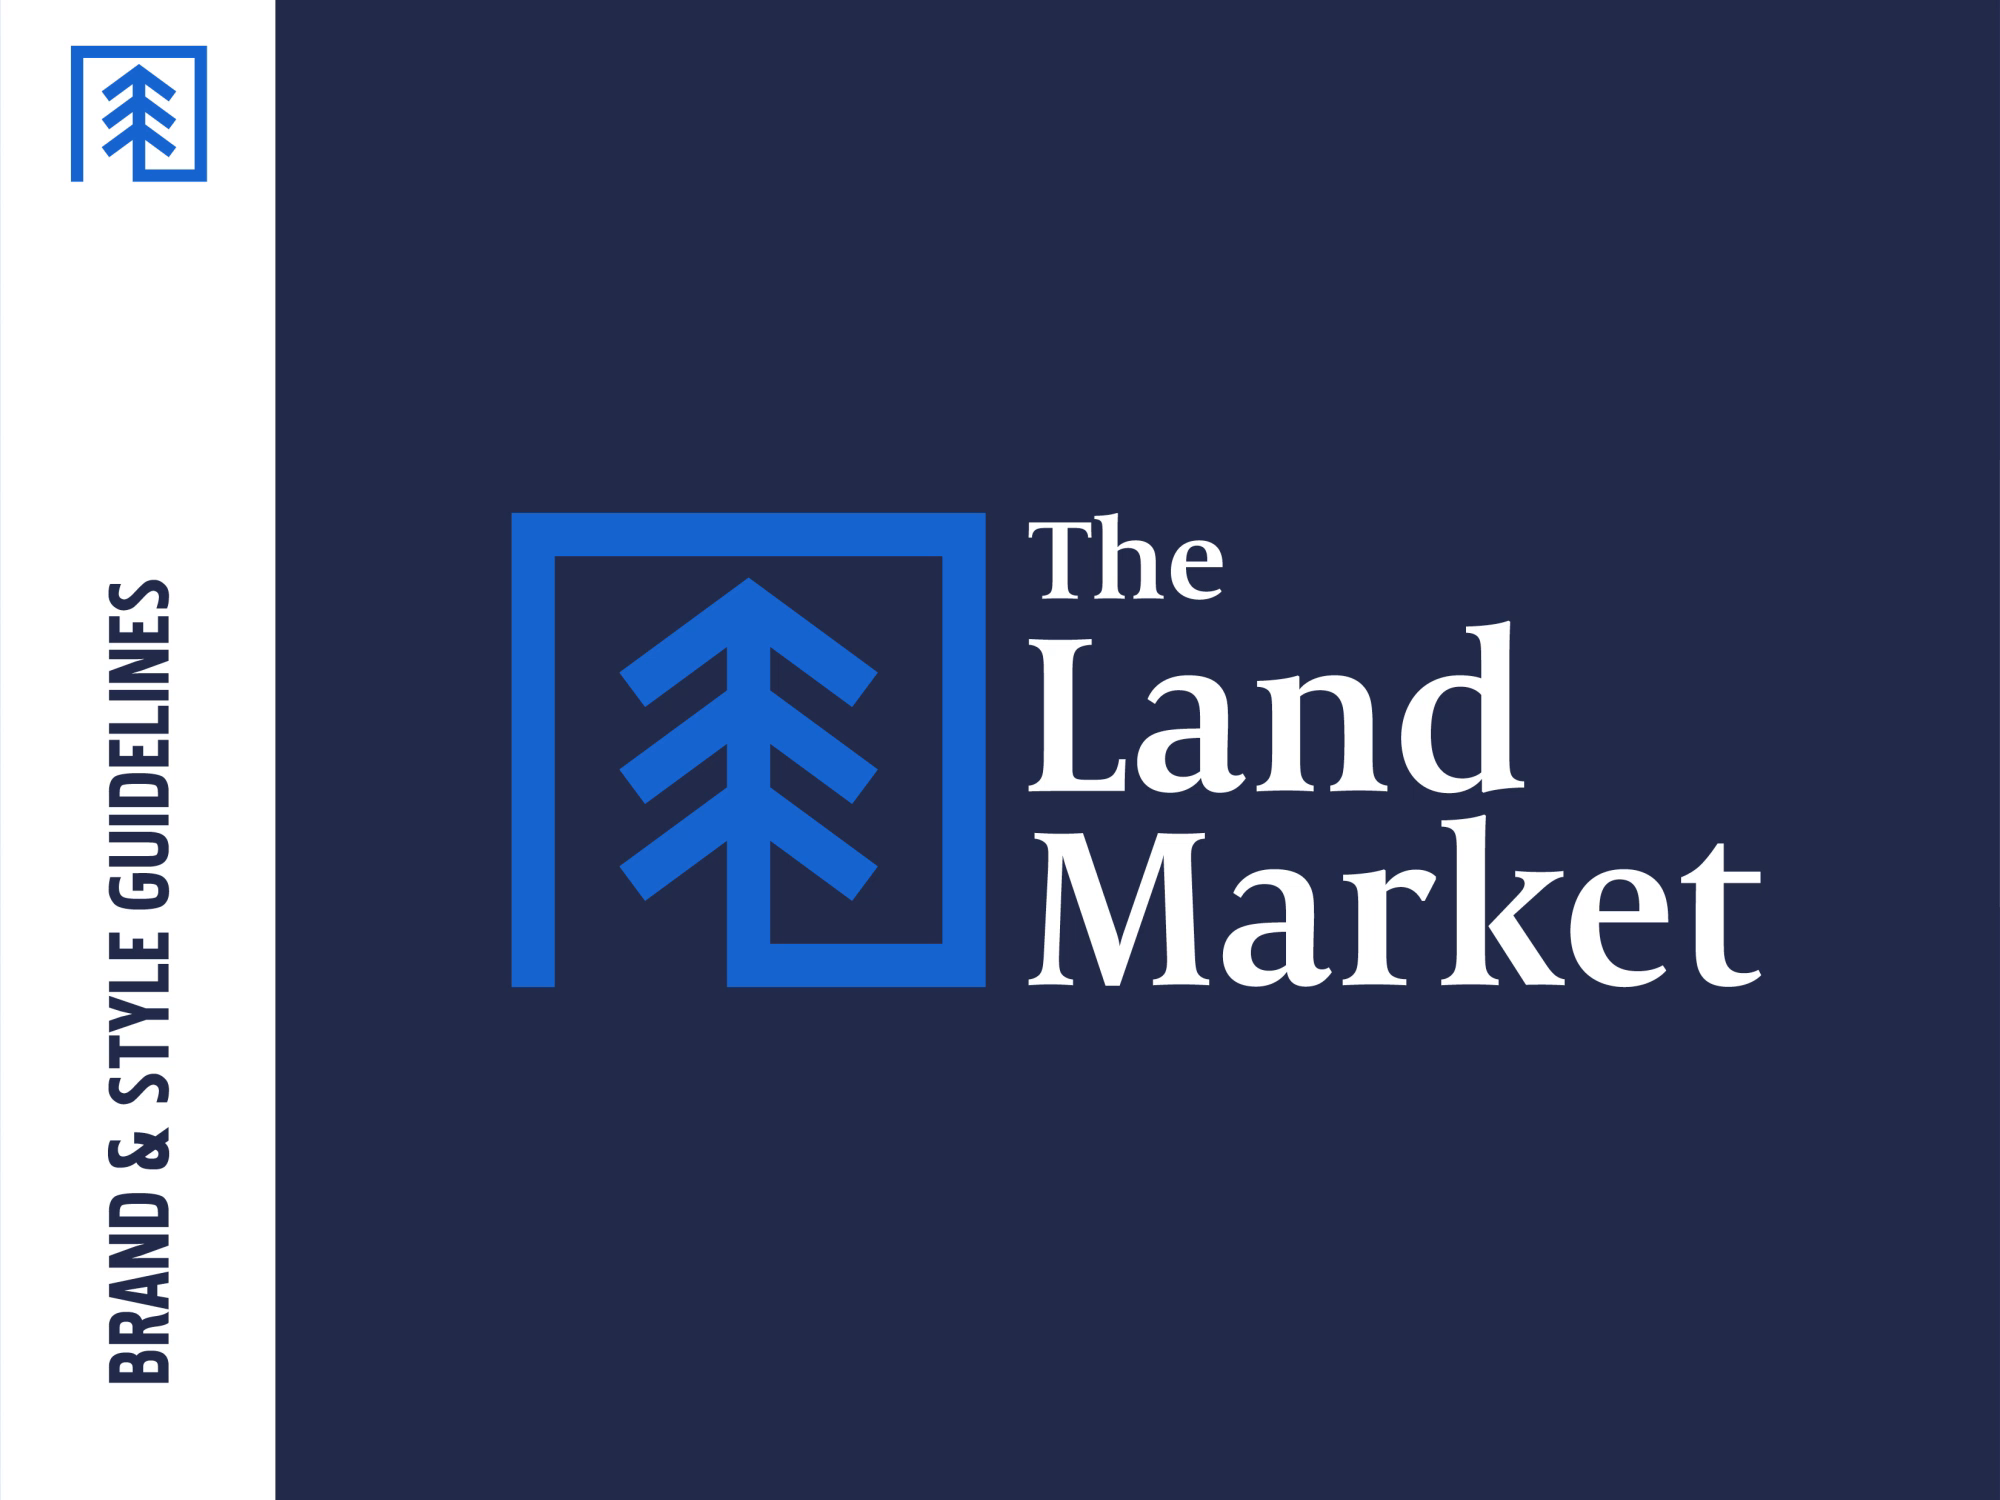 The land market   brand book highlights 1